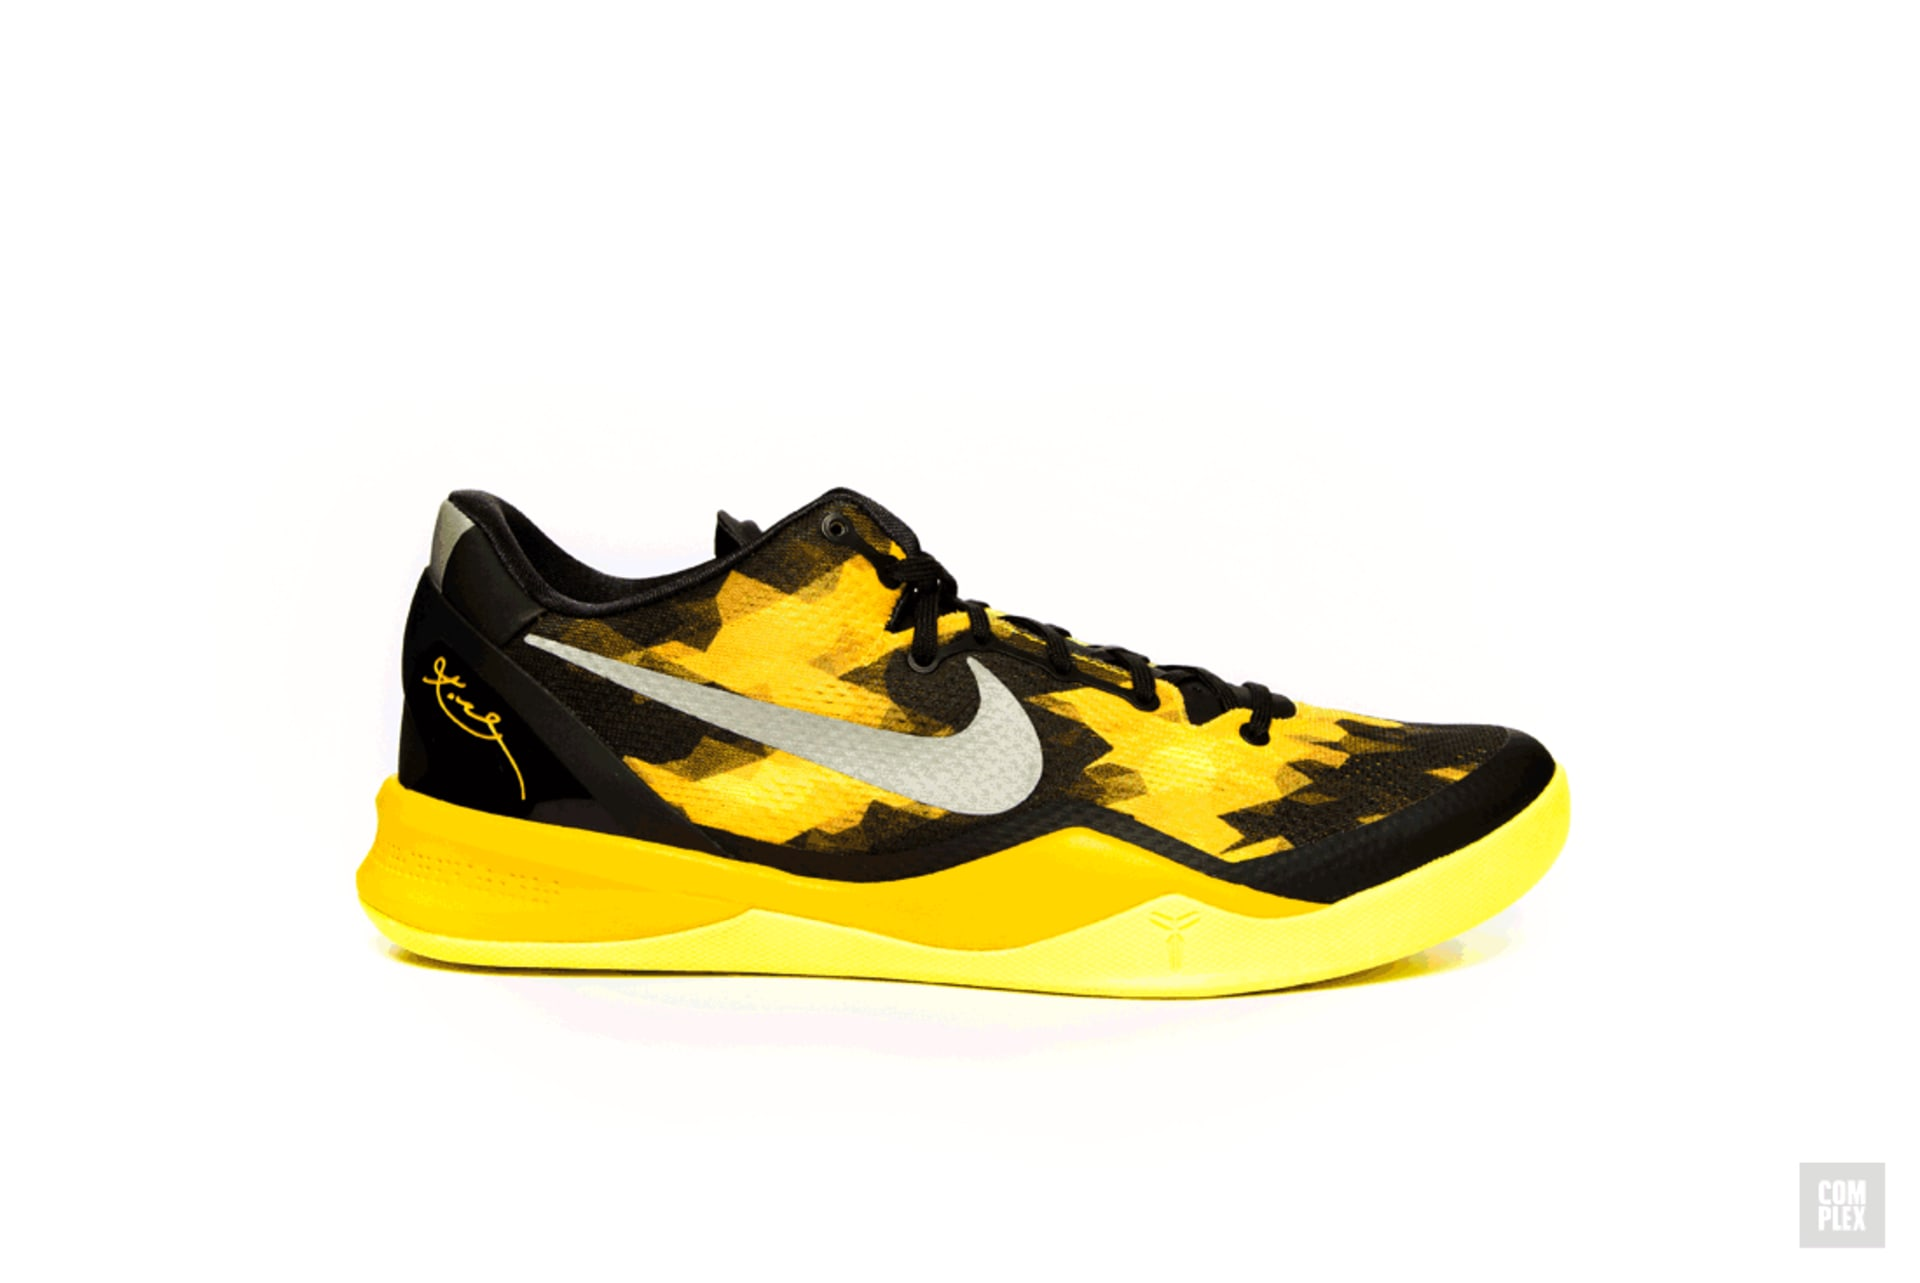 on sale f84c2 8065c Kobe Bryant Signature Sneaker Design Evolution   Complex